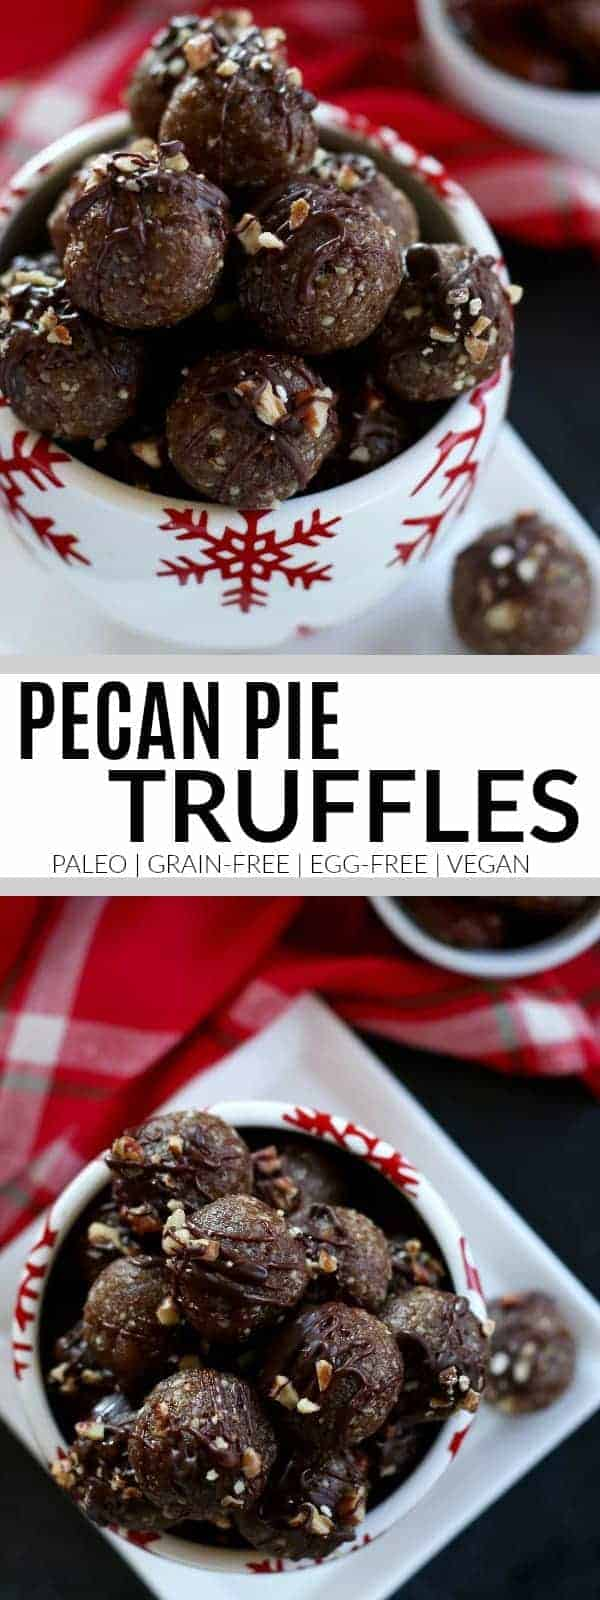 We took the best parts of the pie, added protein and then drizzled them with chocolate in these irresistible No-Bake Pecan Pie Truffles | Paleo | Grain-free | Gluten-free | Egg-free | Dairy-free | healthy holiday recipes | paleo holiday desserts | gluten-free holiday desserts | dairy-free holiday desserts || The Real Food Dietitians #paleoholiday #glutenfreeholiday #healthyholidayrecipes